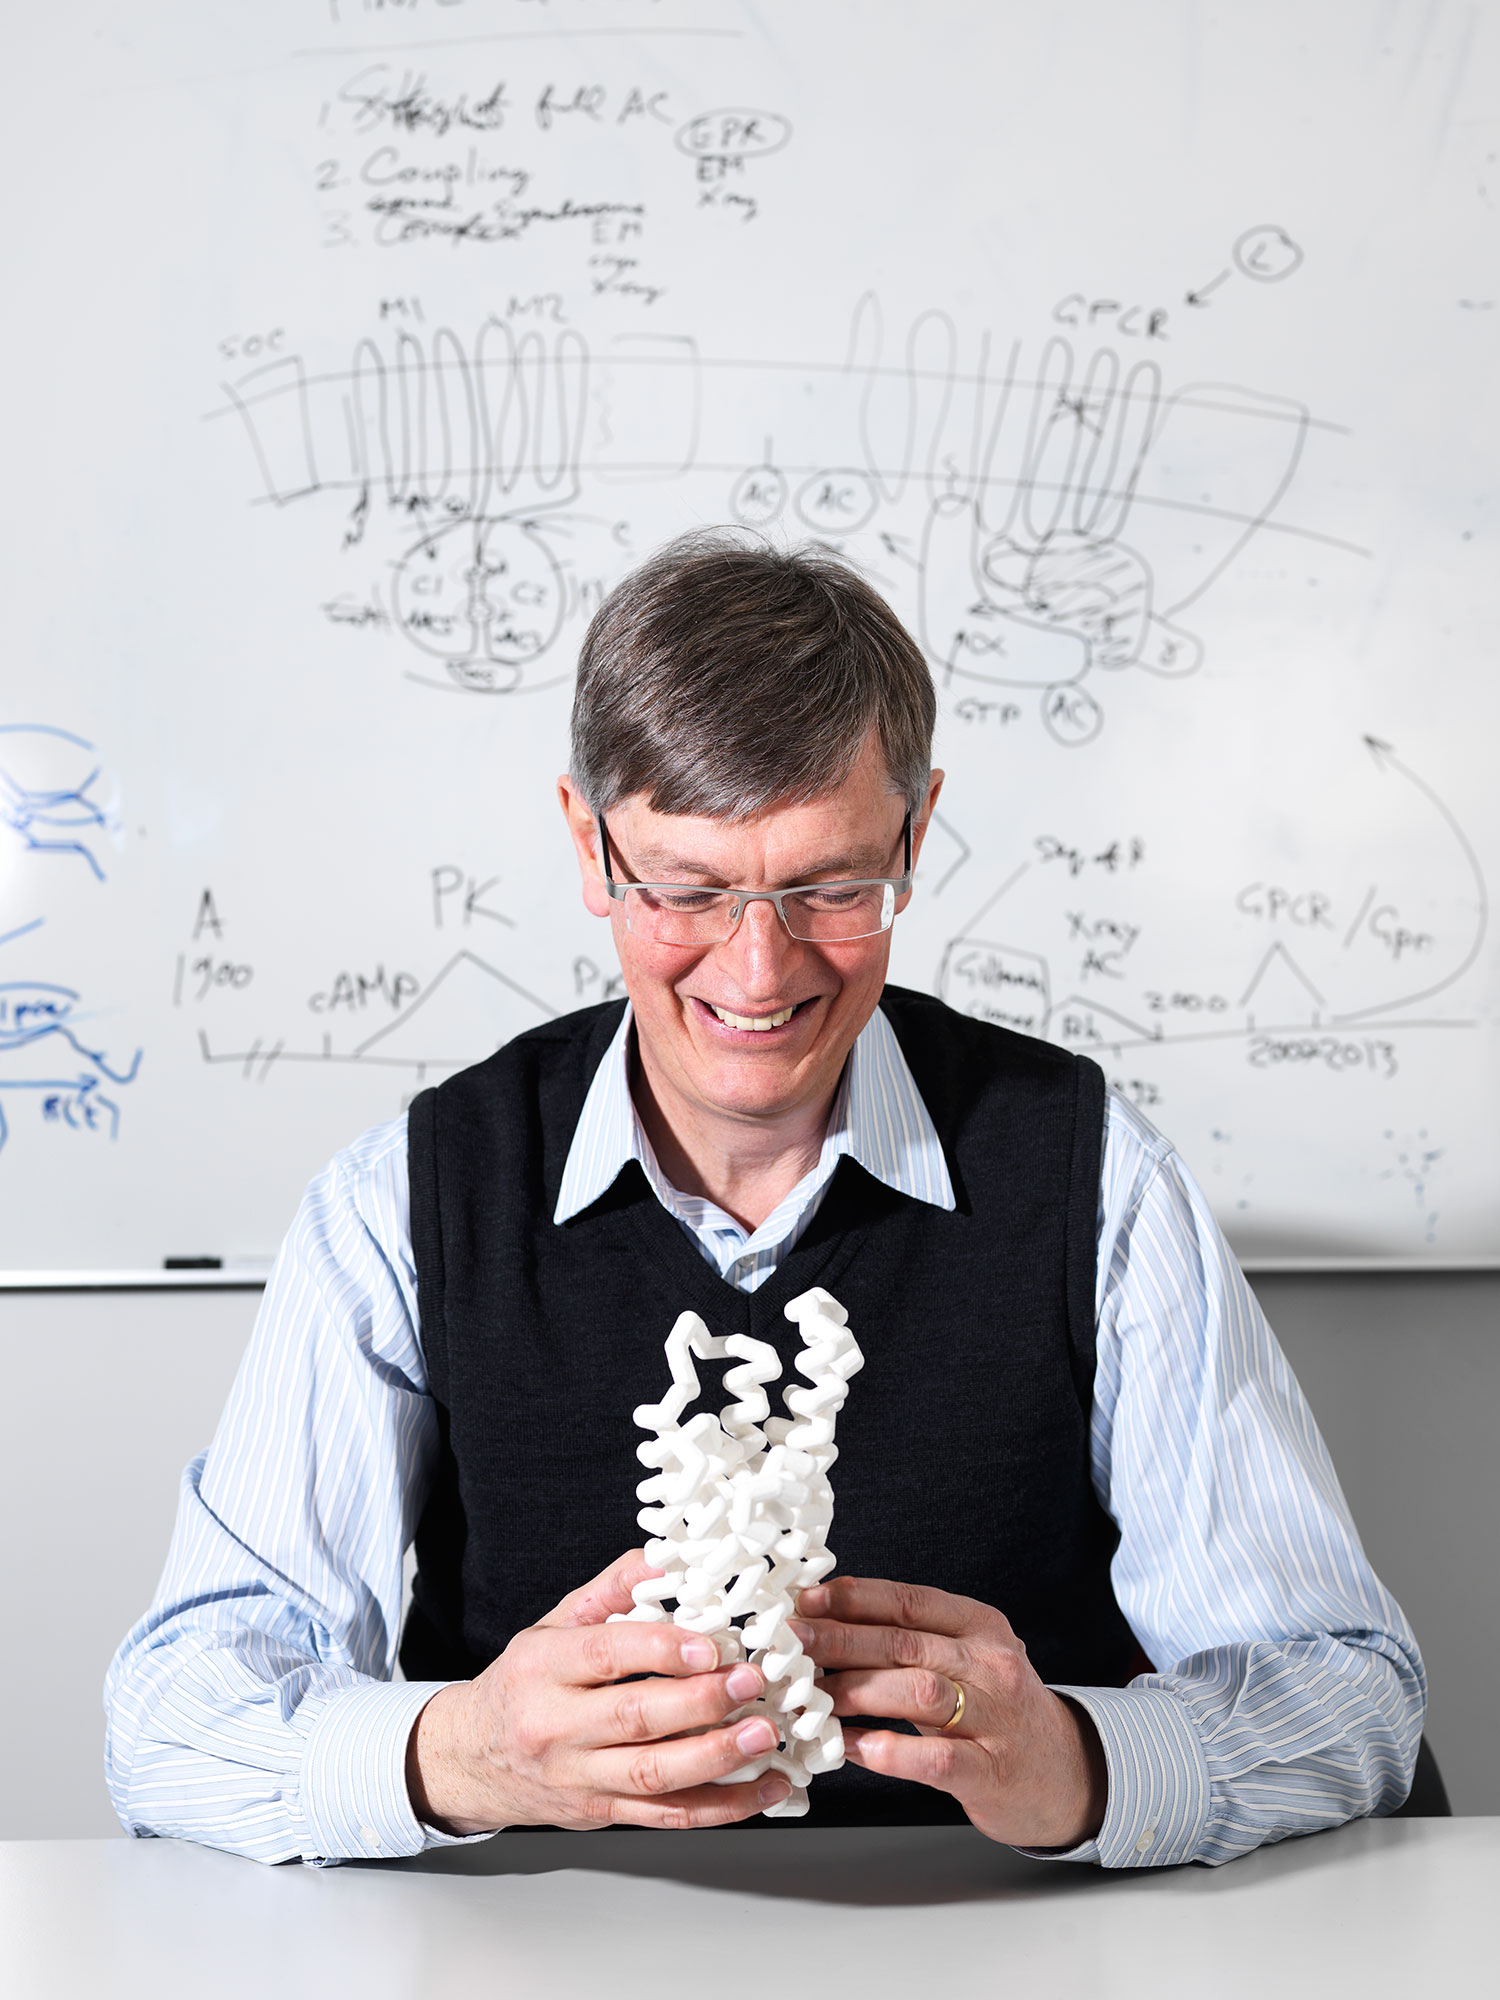 Gebhard Schertler is Head of the Division for Biology and Chemistry at PSI. He and his research team applied themselves to the new study with their many years of experience in research with G protein coupled receptors.  Here he holds an oversized model of such a receptor in hands. (Photo: Scanderbeg Sauer Photography)